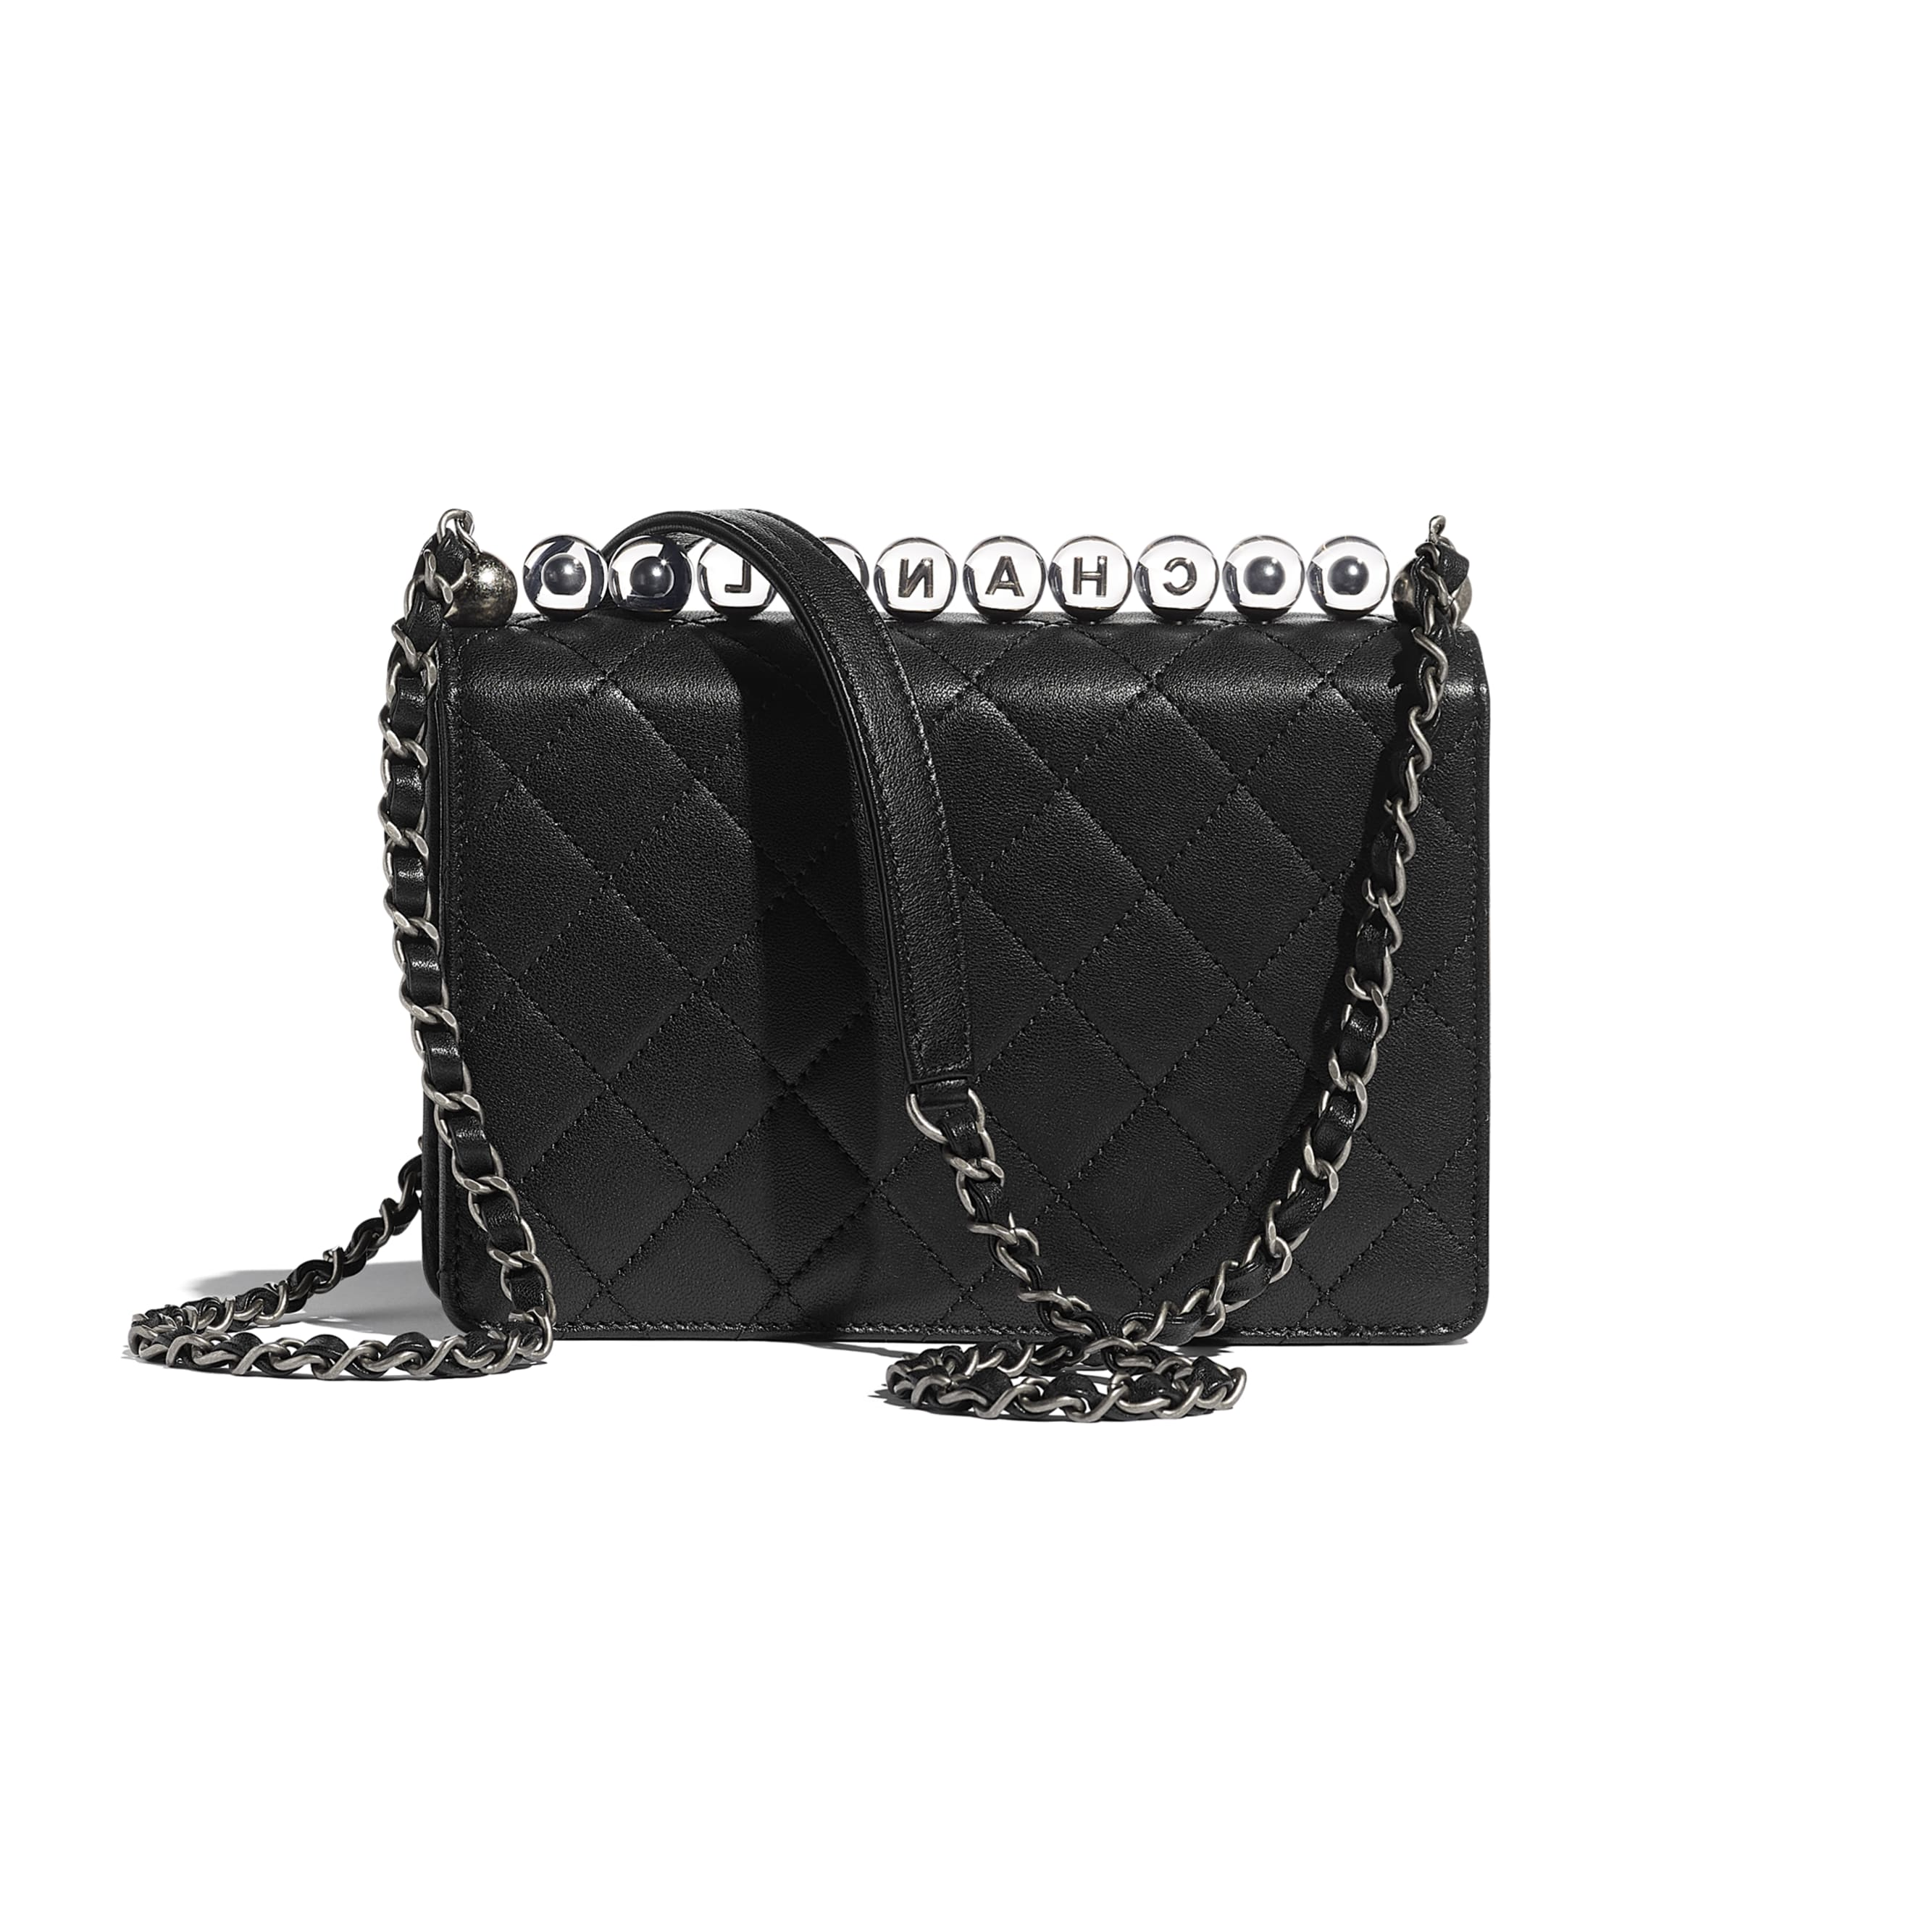 Flap Bag - Black - Goatskin, Acrylic Beads & Ruthenium-Finish Metal - Alternative view - see standard sized version